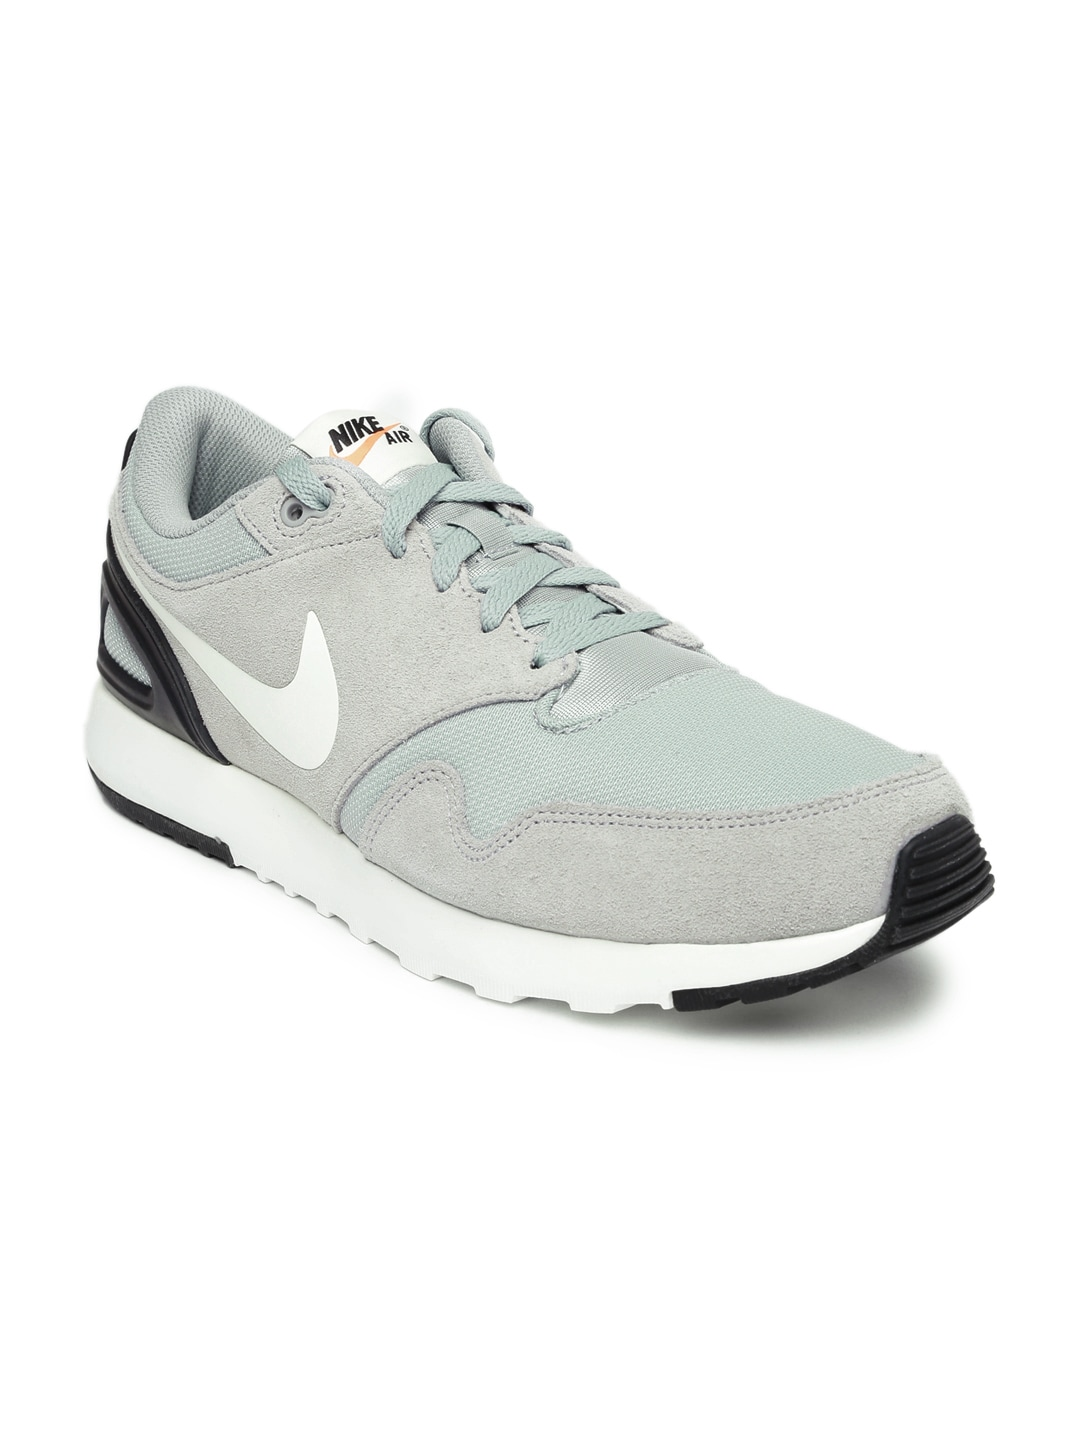 ... promo code nike casual shoes buy nike casual shoes for men women online  in india 0c8bd 07db646d7